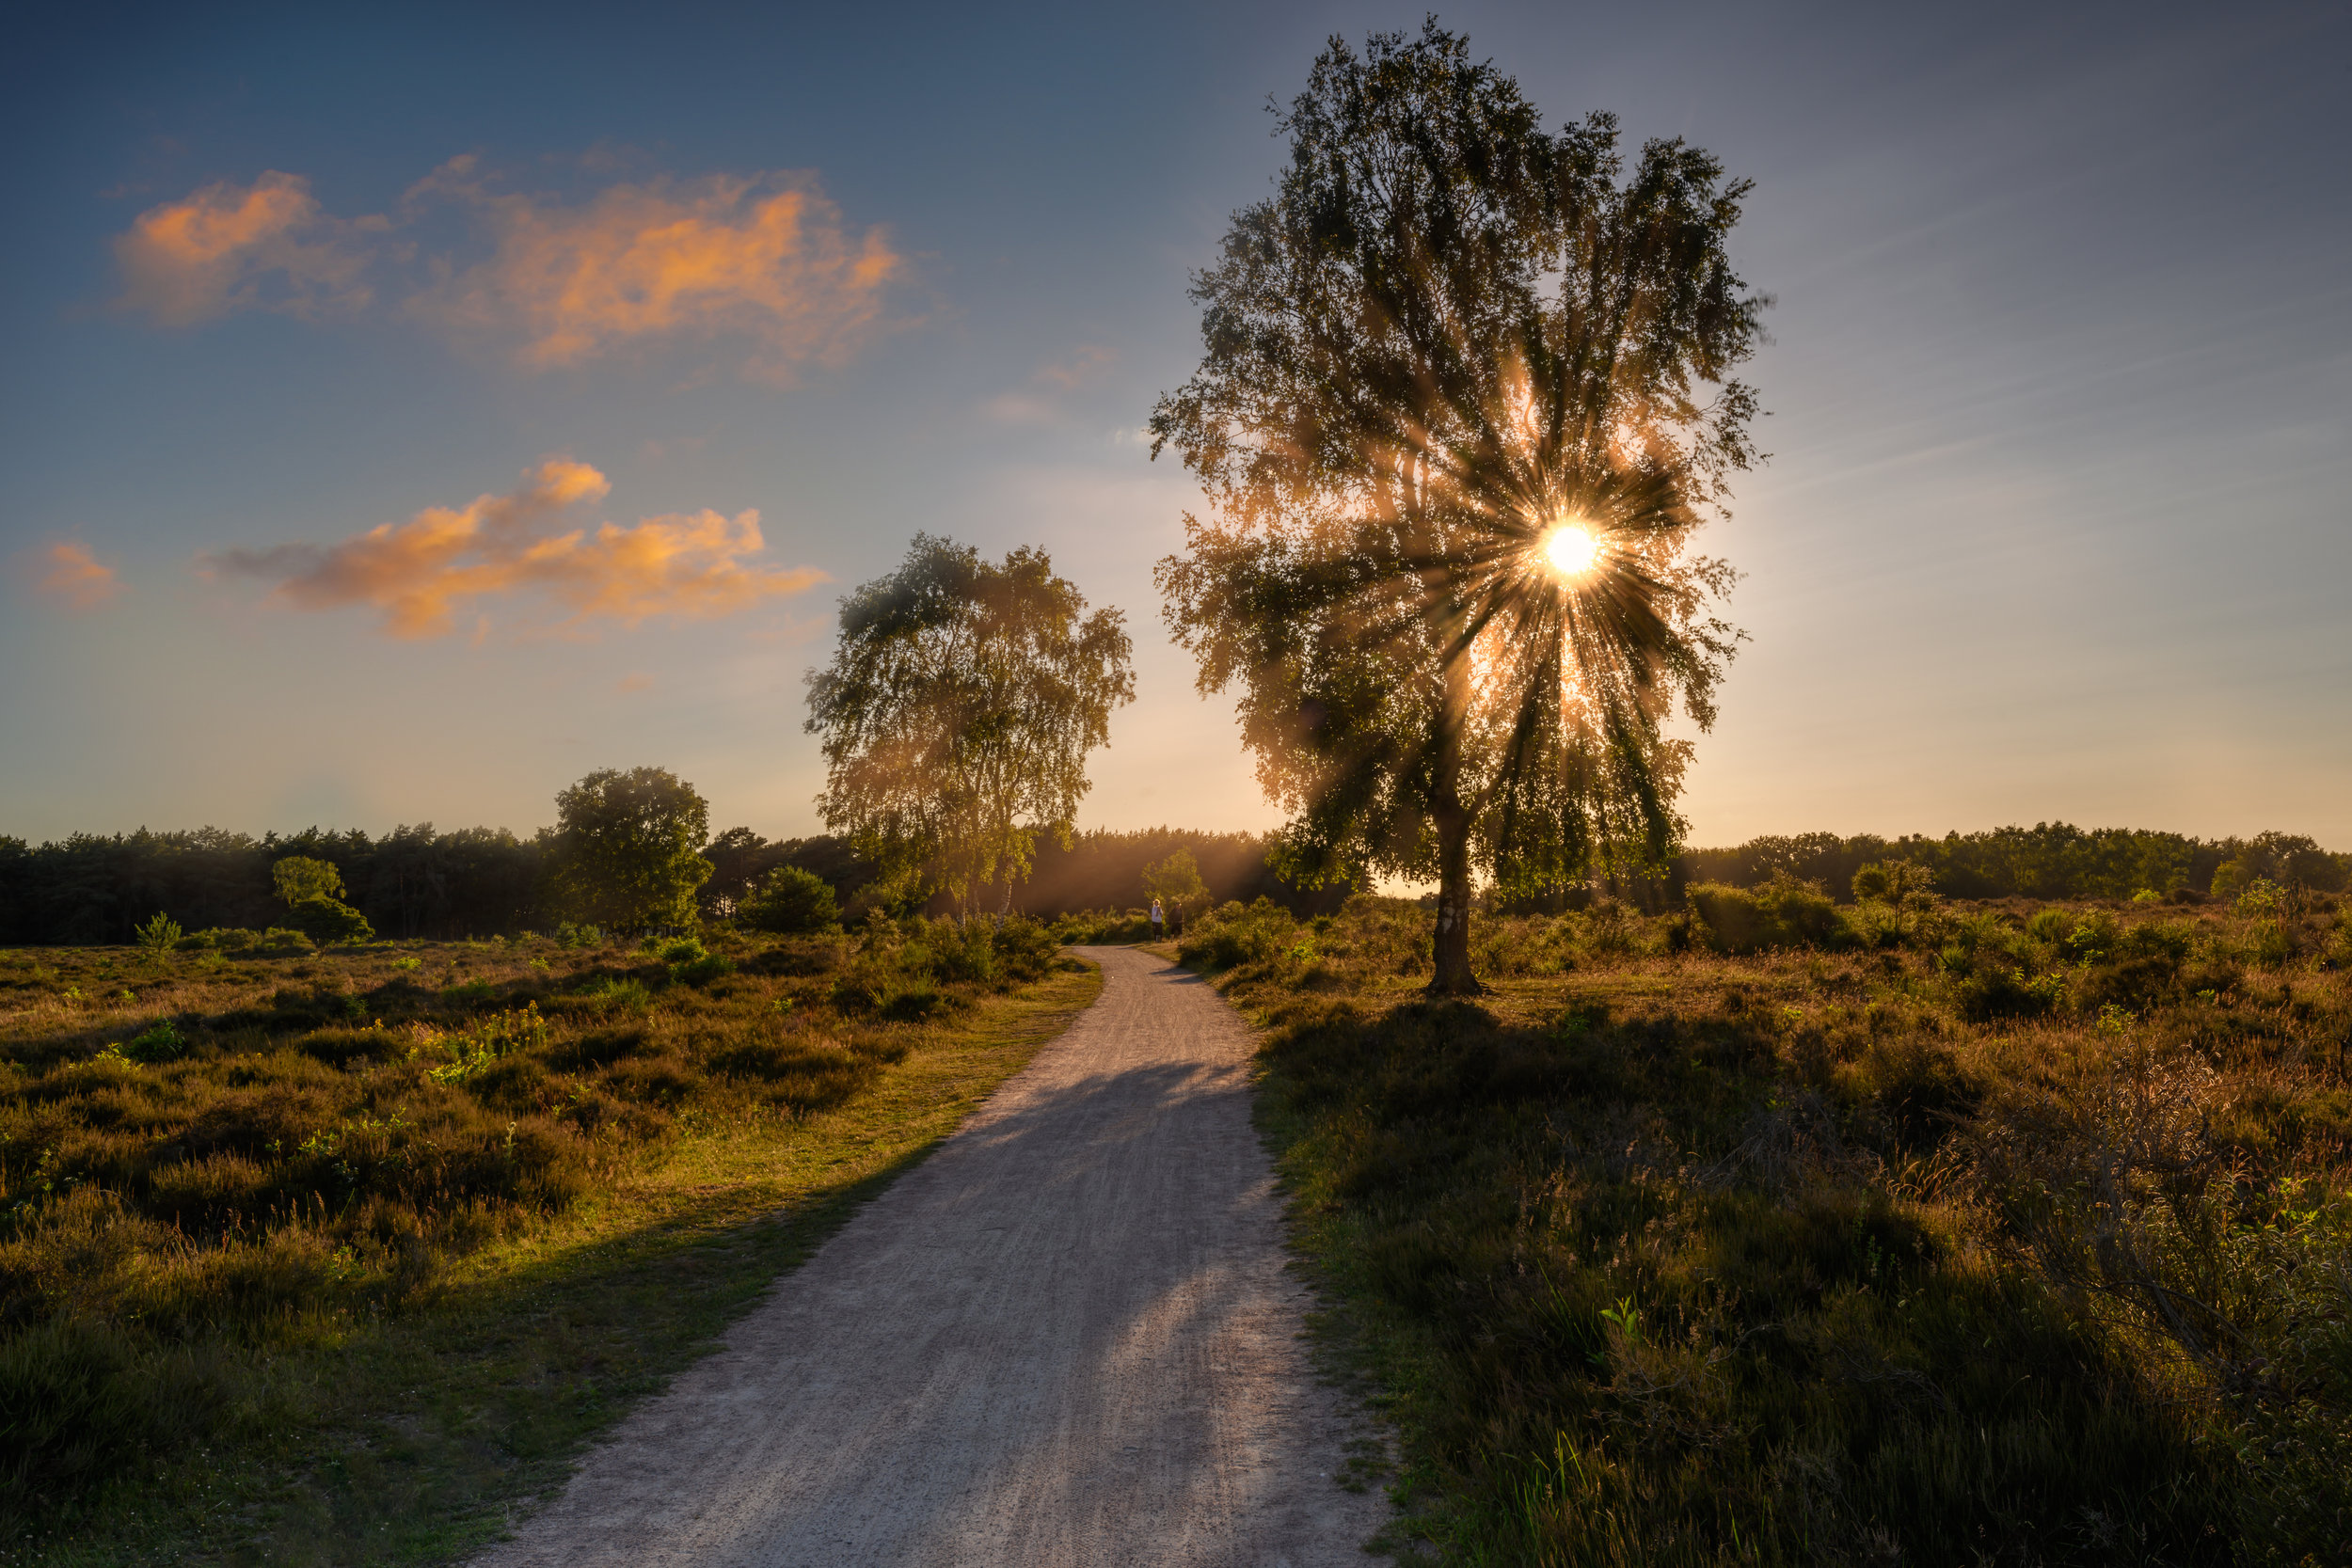 Hilversumse Heide, The Netherlands